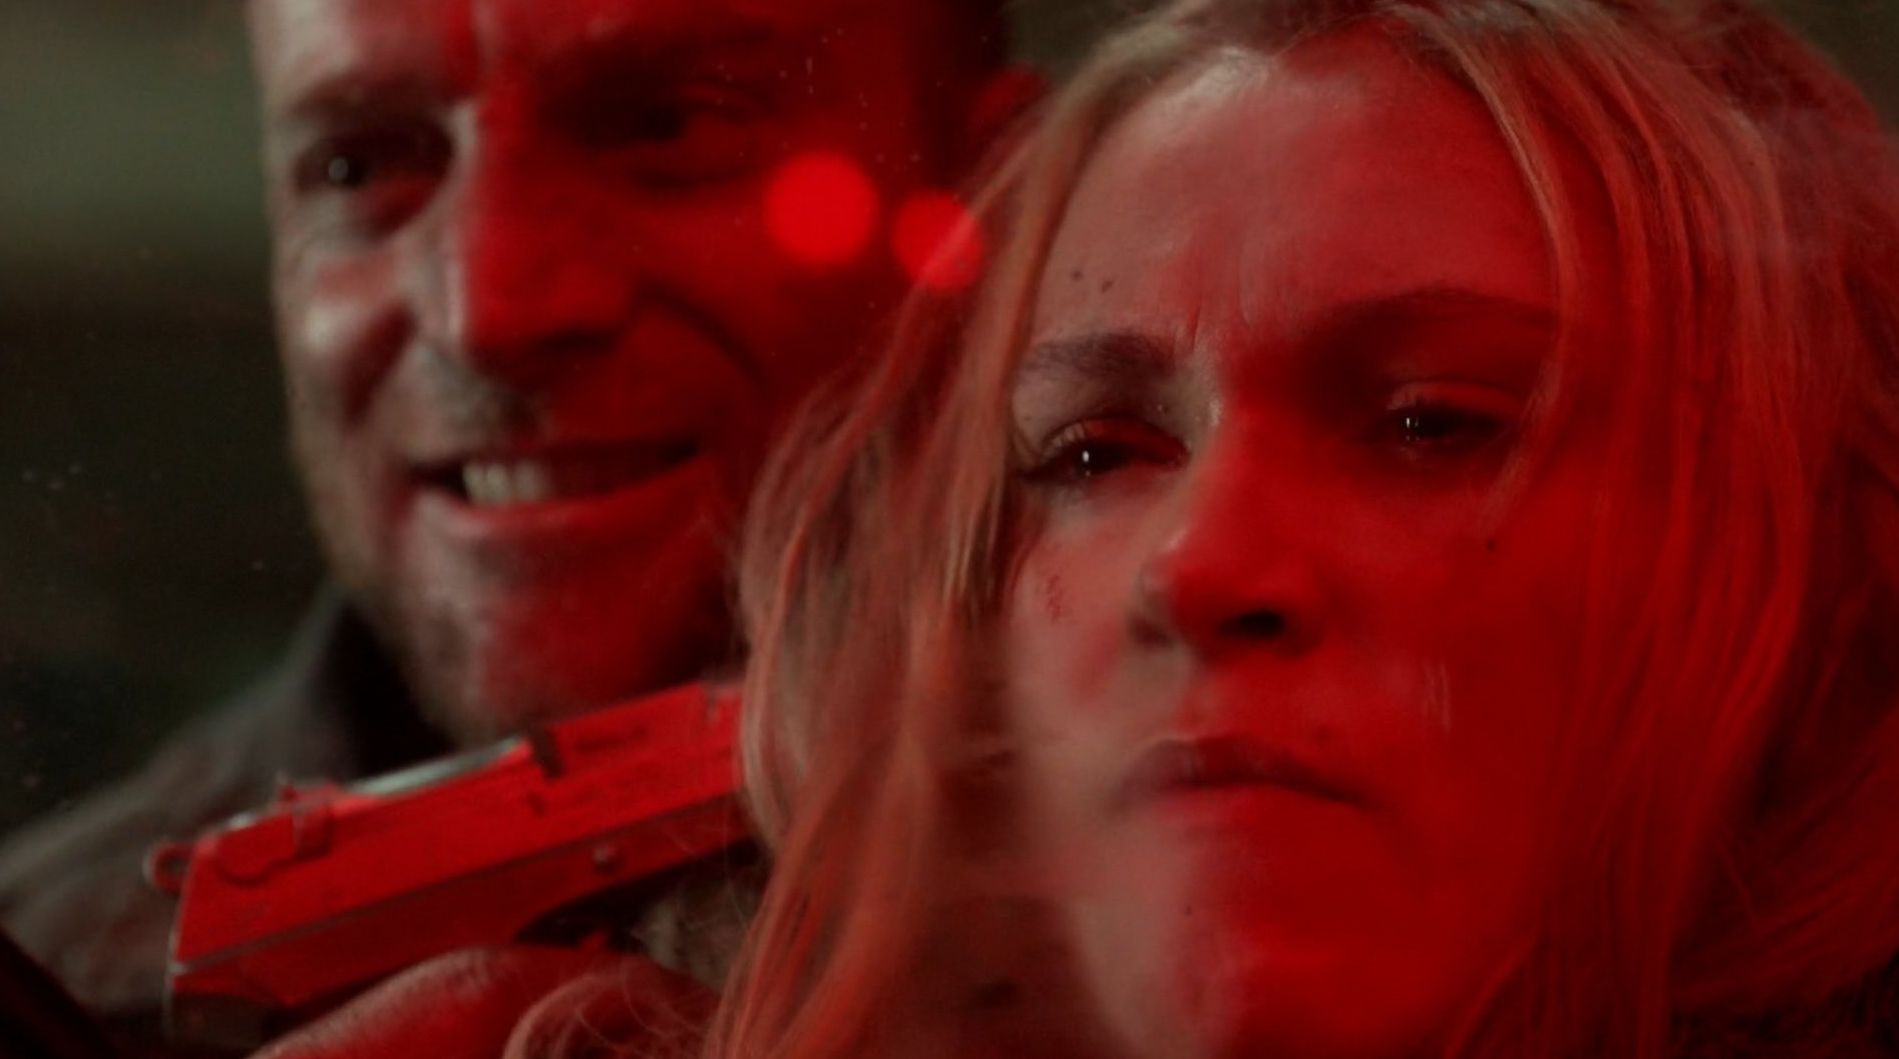 Clarke Griffin in The 100